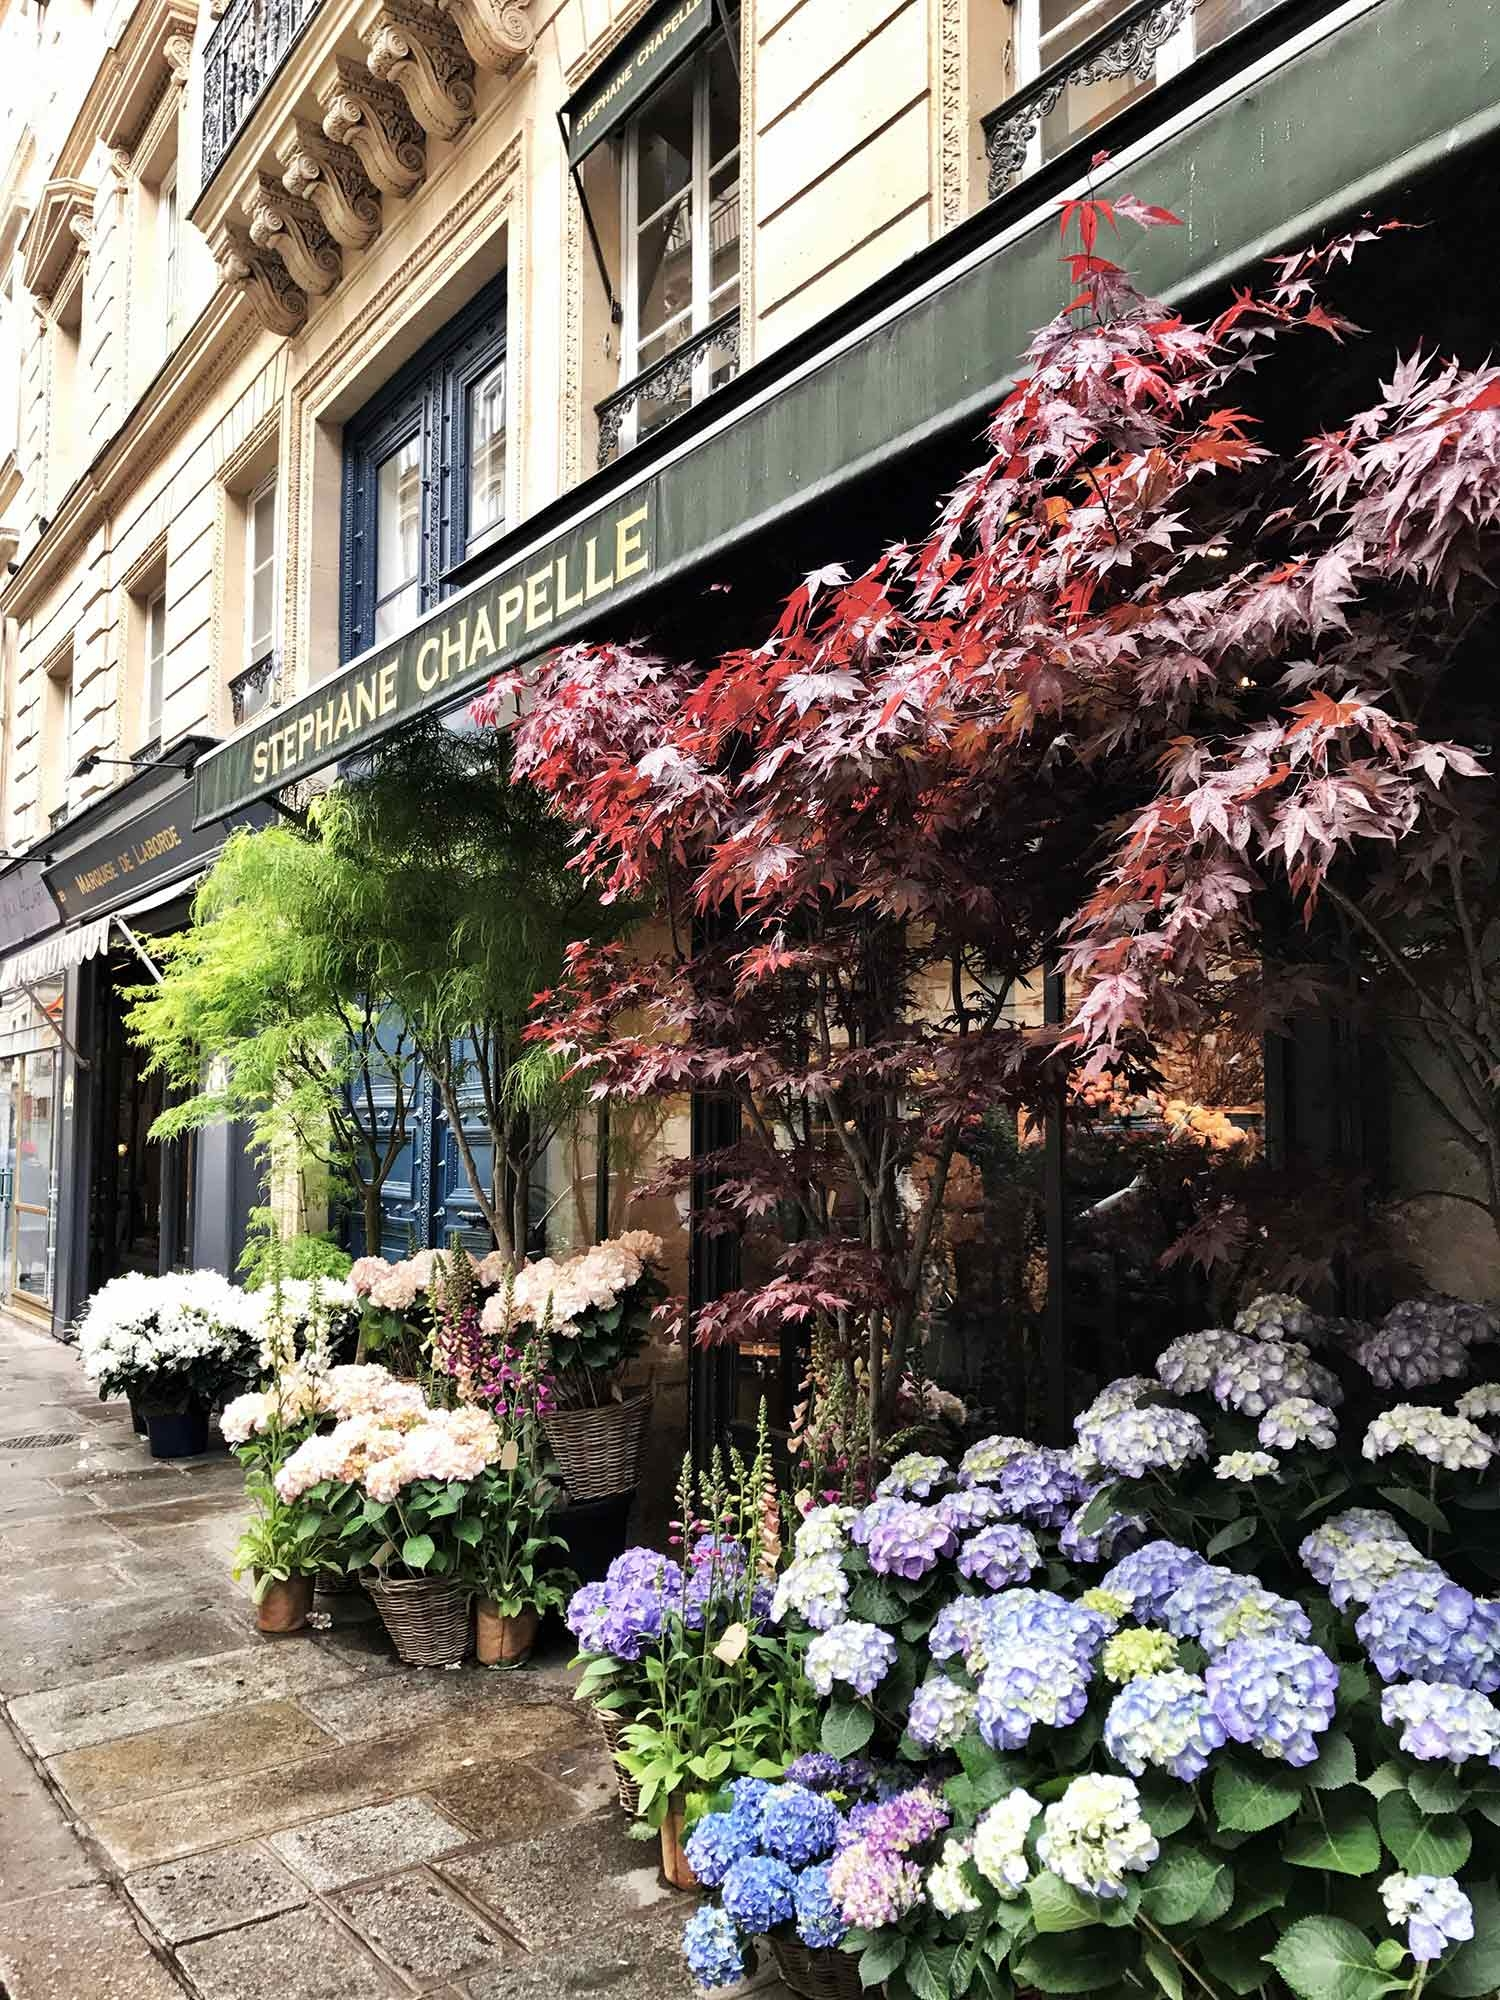 Potted flowers in full bloom line the streets of Paris